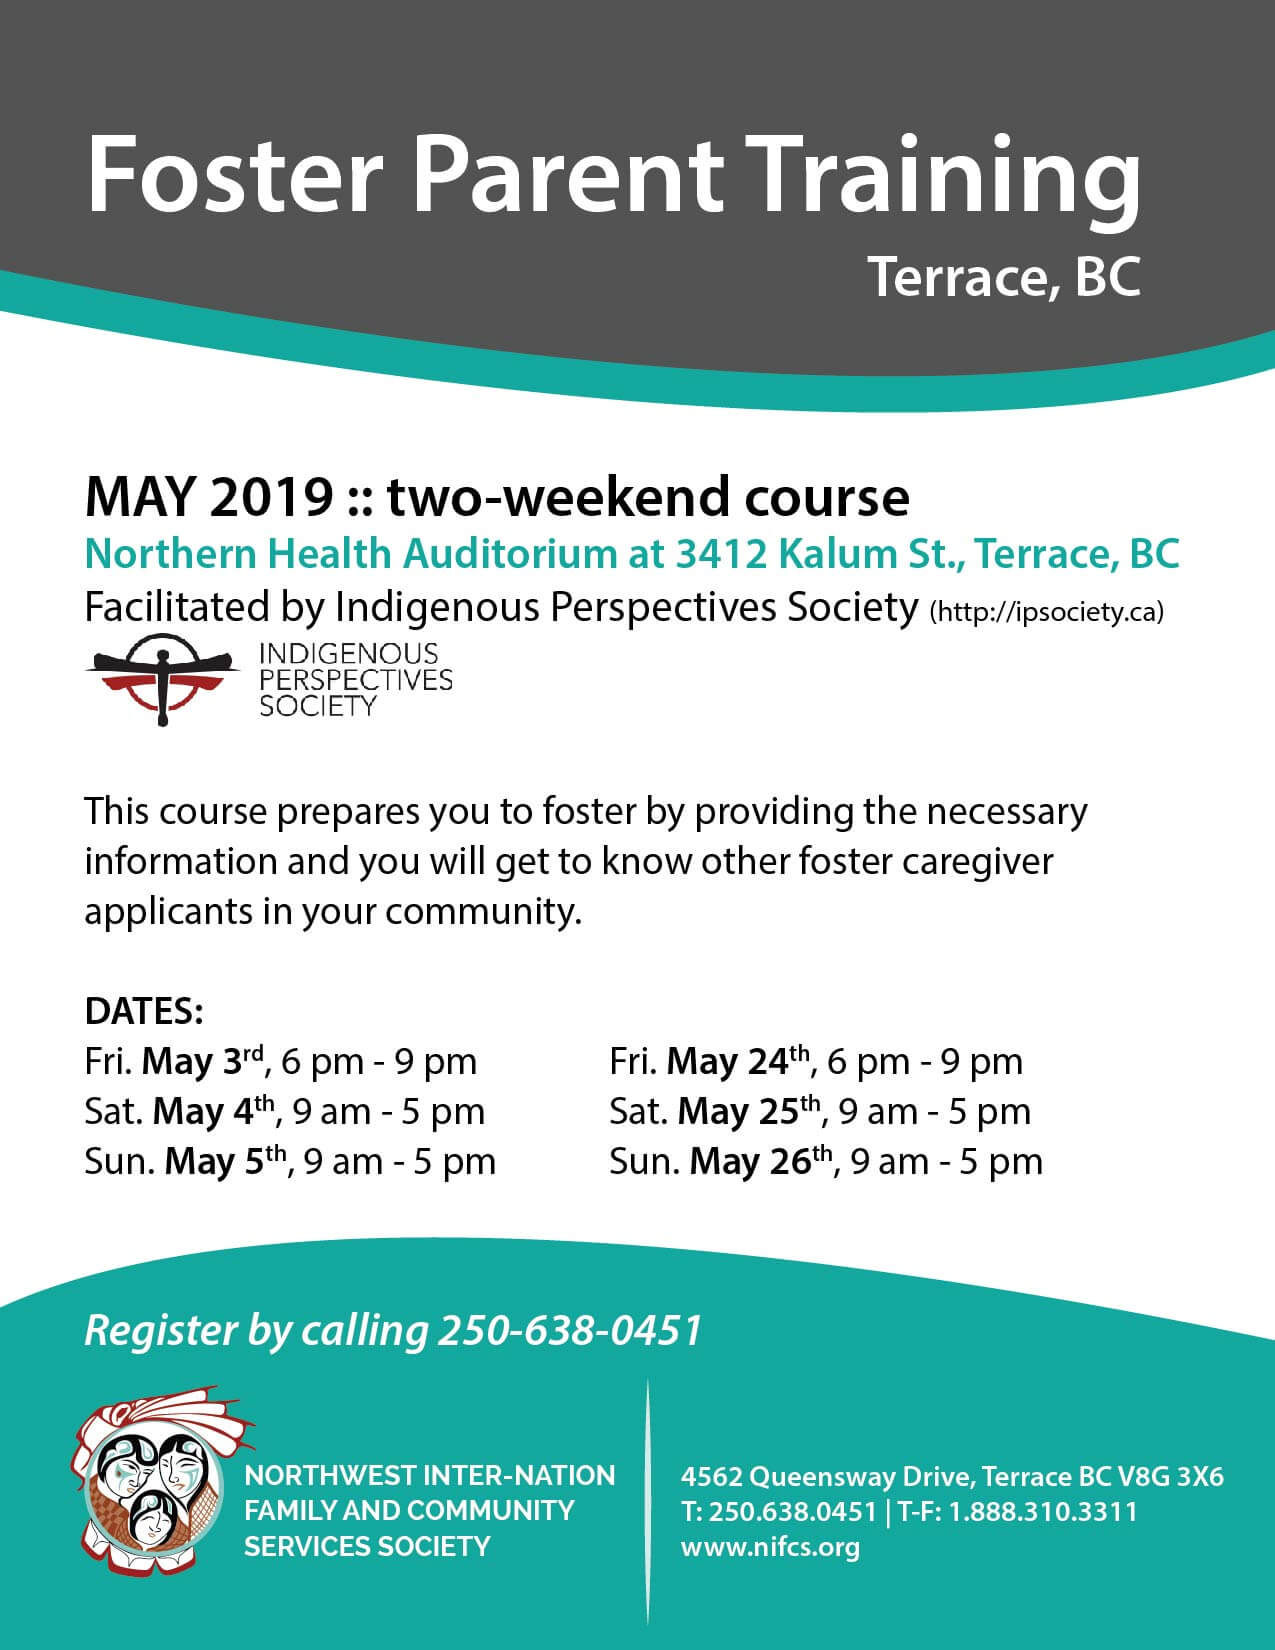 Foster Parent Training May 2019 Terrace